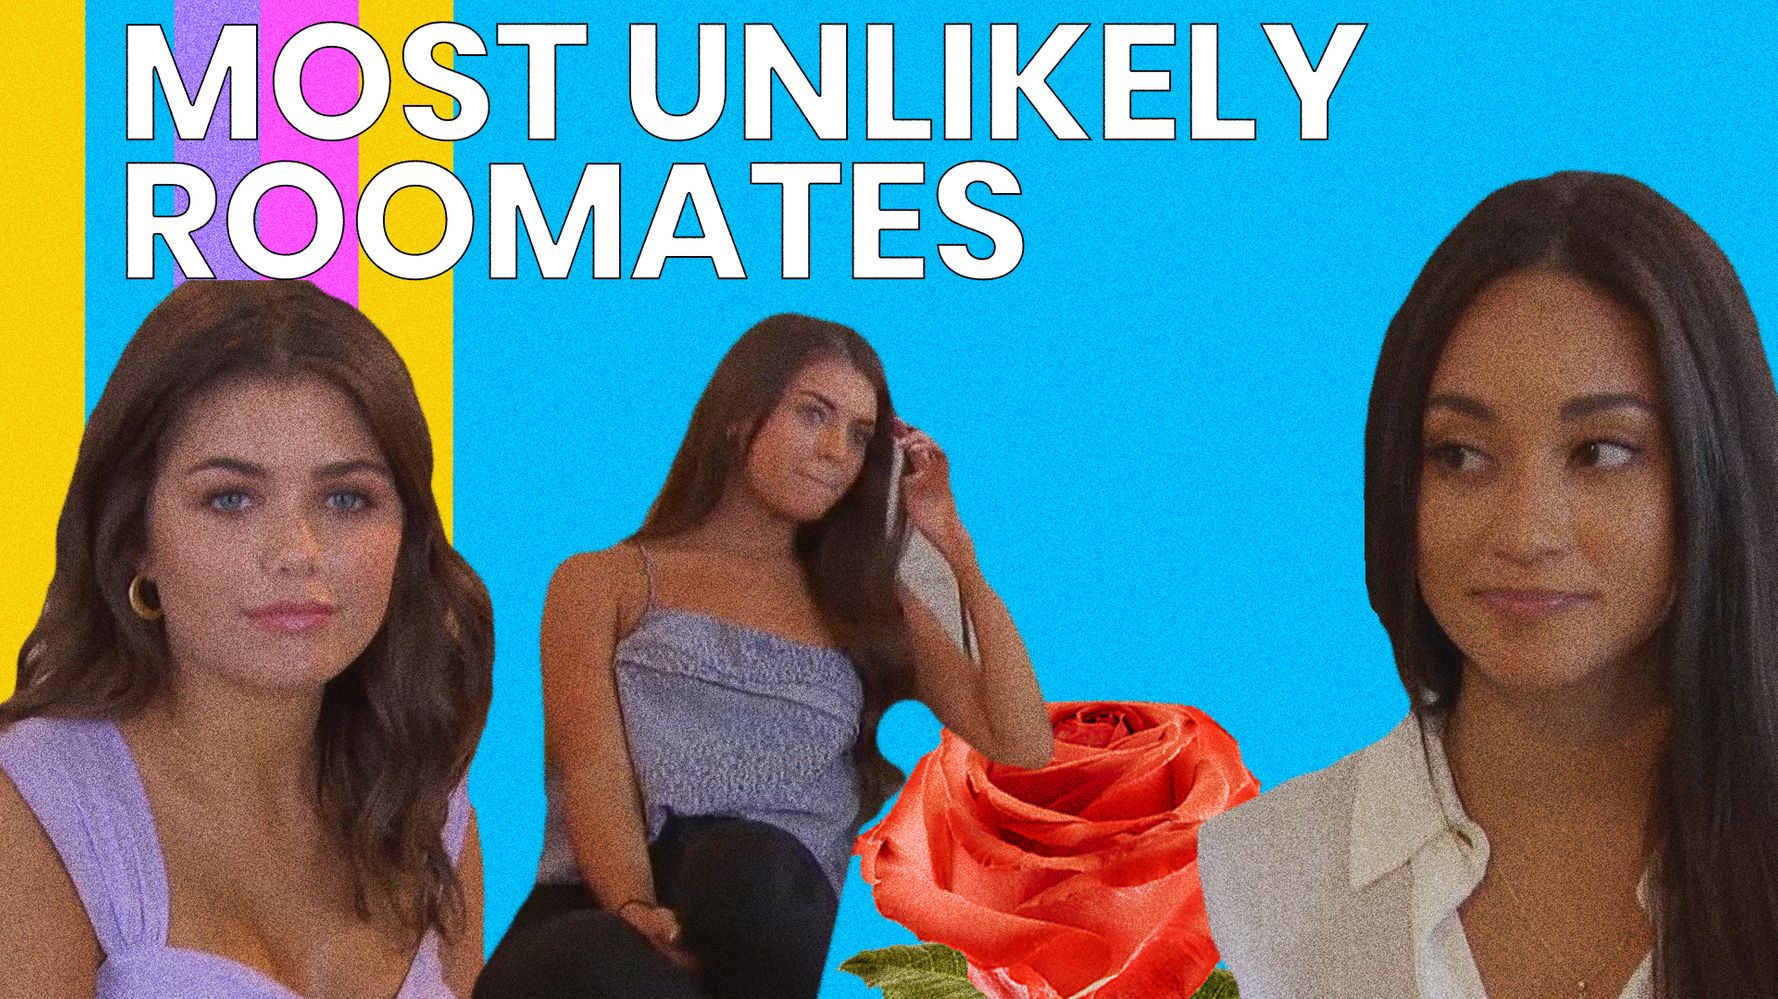 Fantasy Suite Dates Get Awkward On The 9th 'Bachelor' Episode